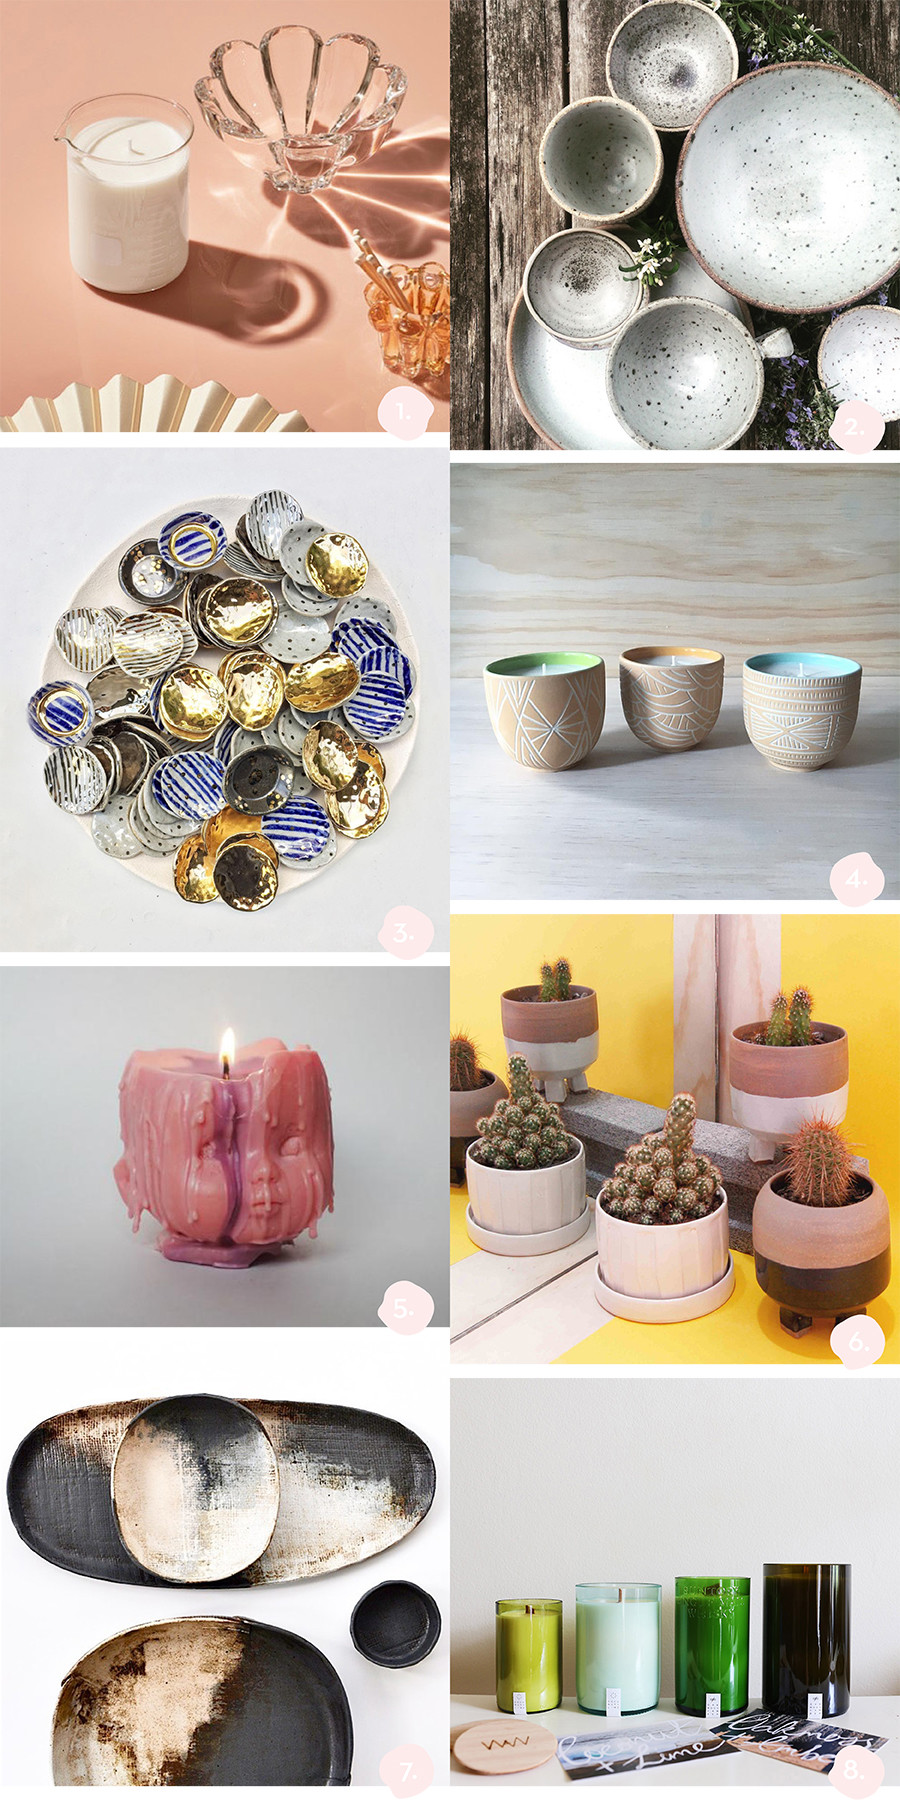 Sydney AW17 Finders Keepers Highlights - Candles and Ceramics